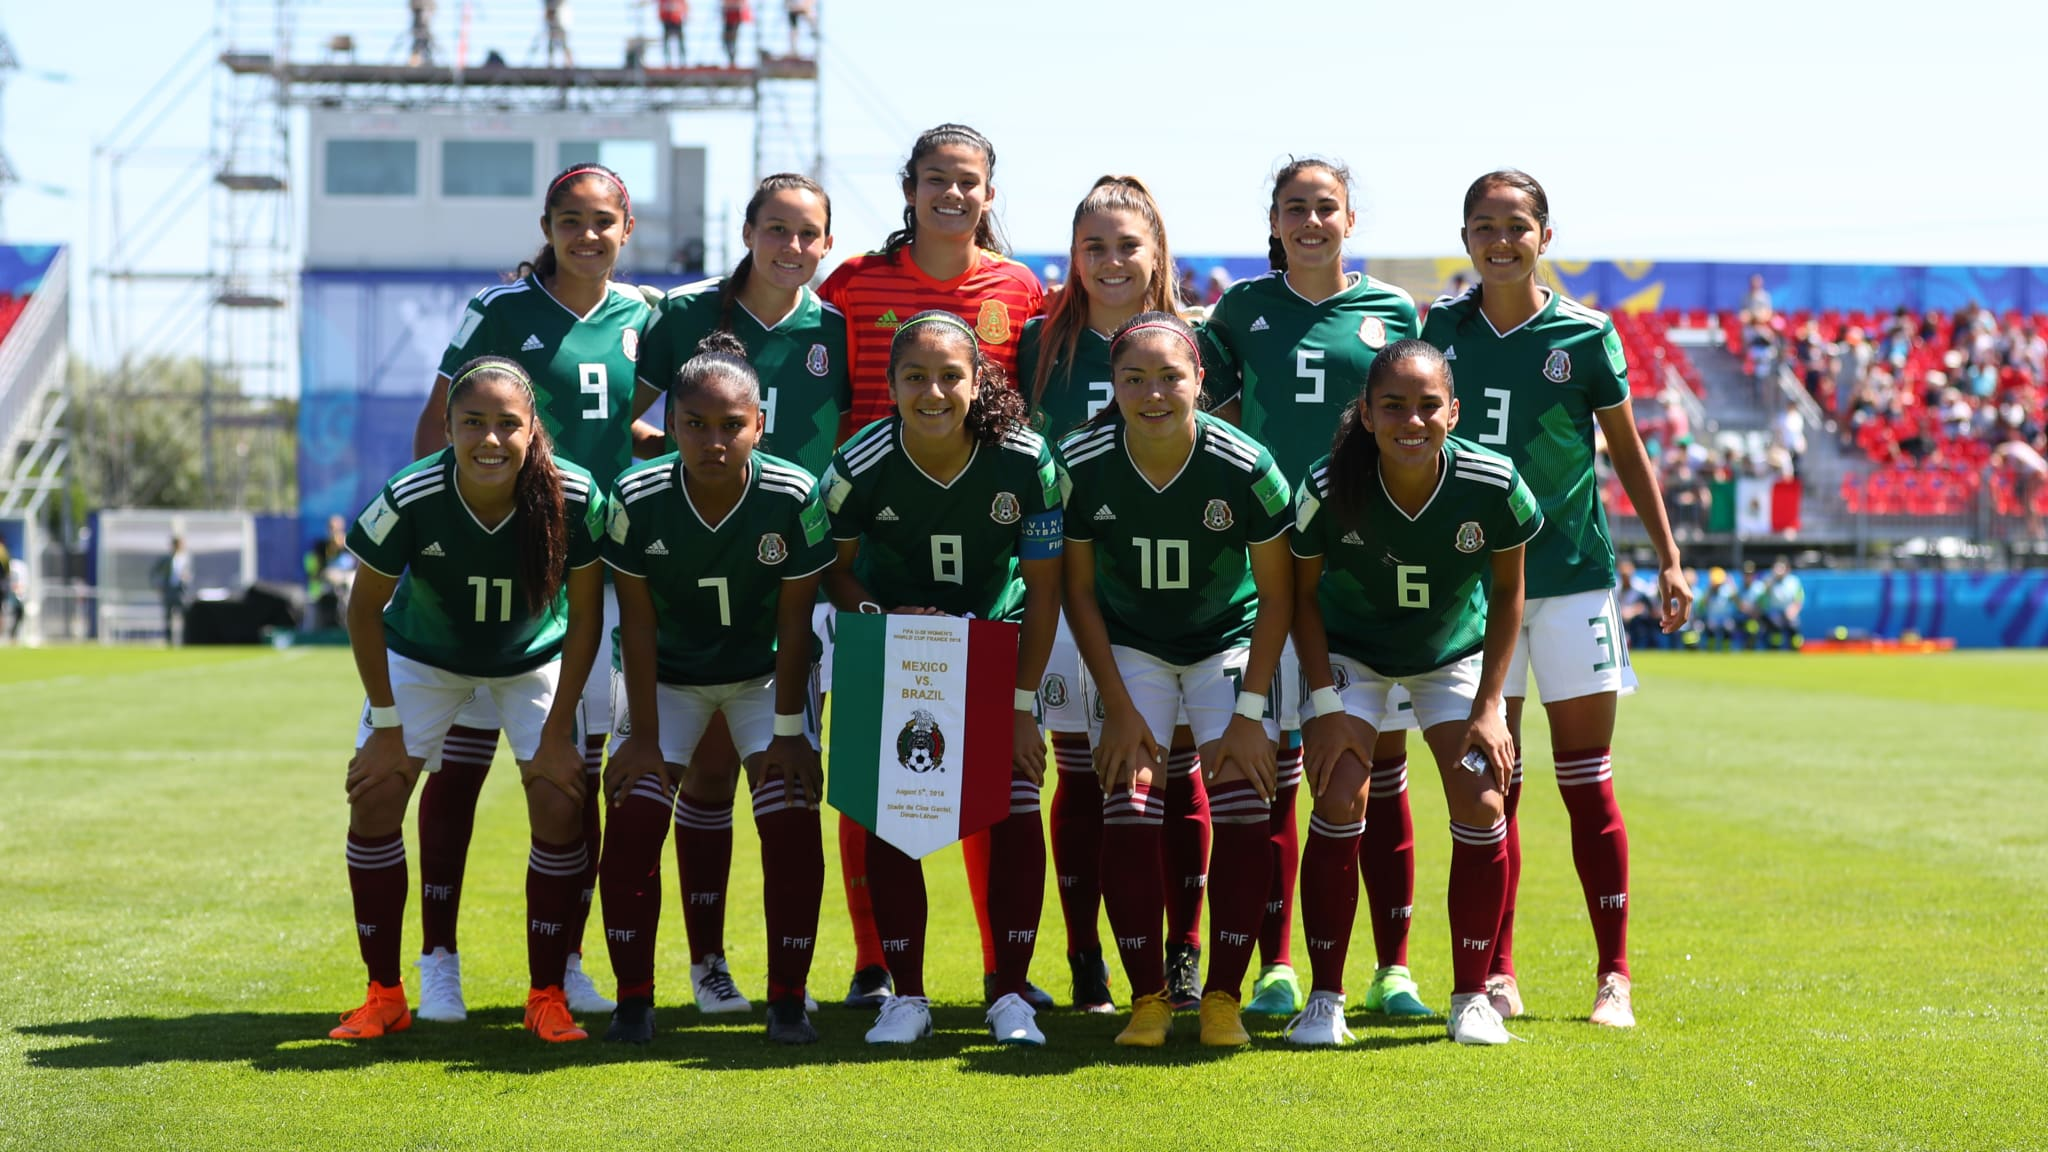 2048x1152 - Mexican Soccer Team 2018 10